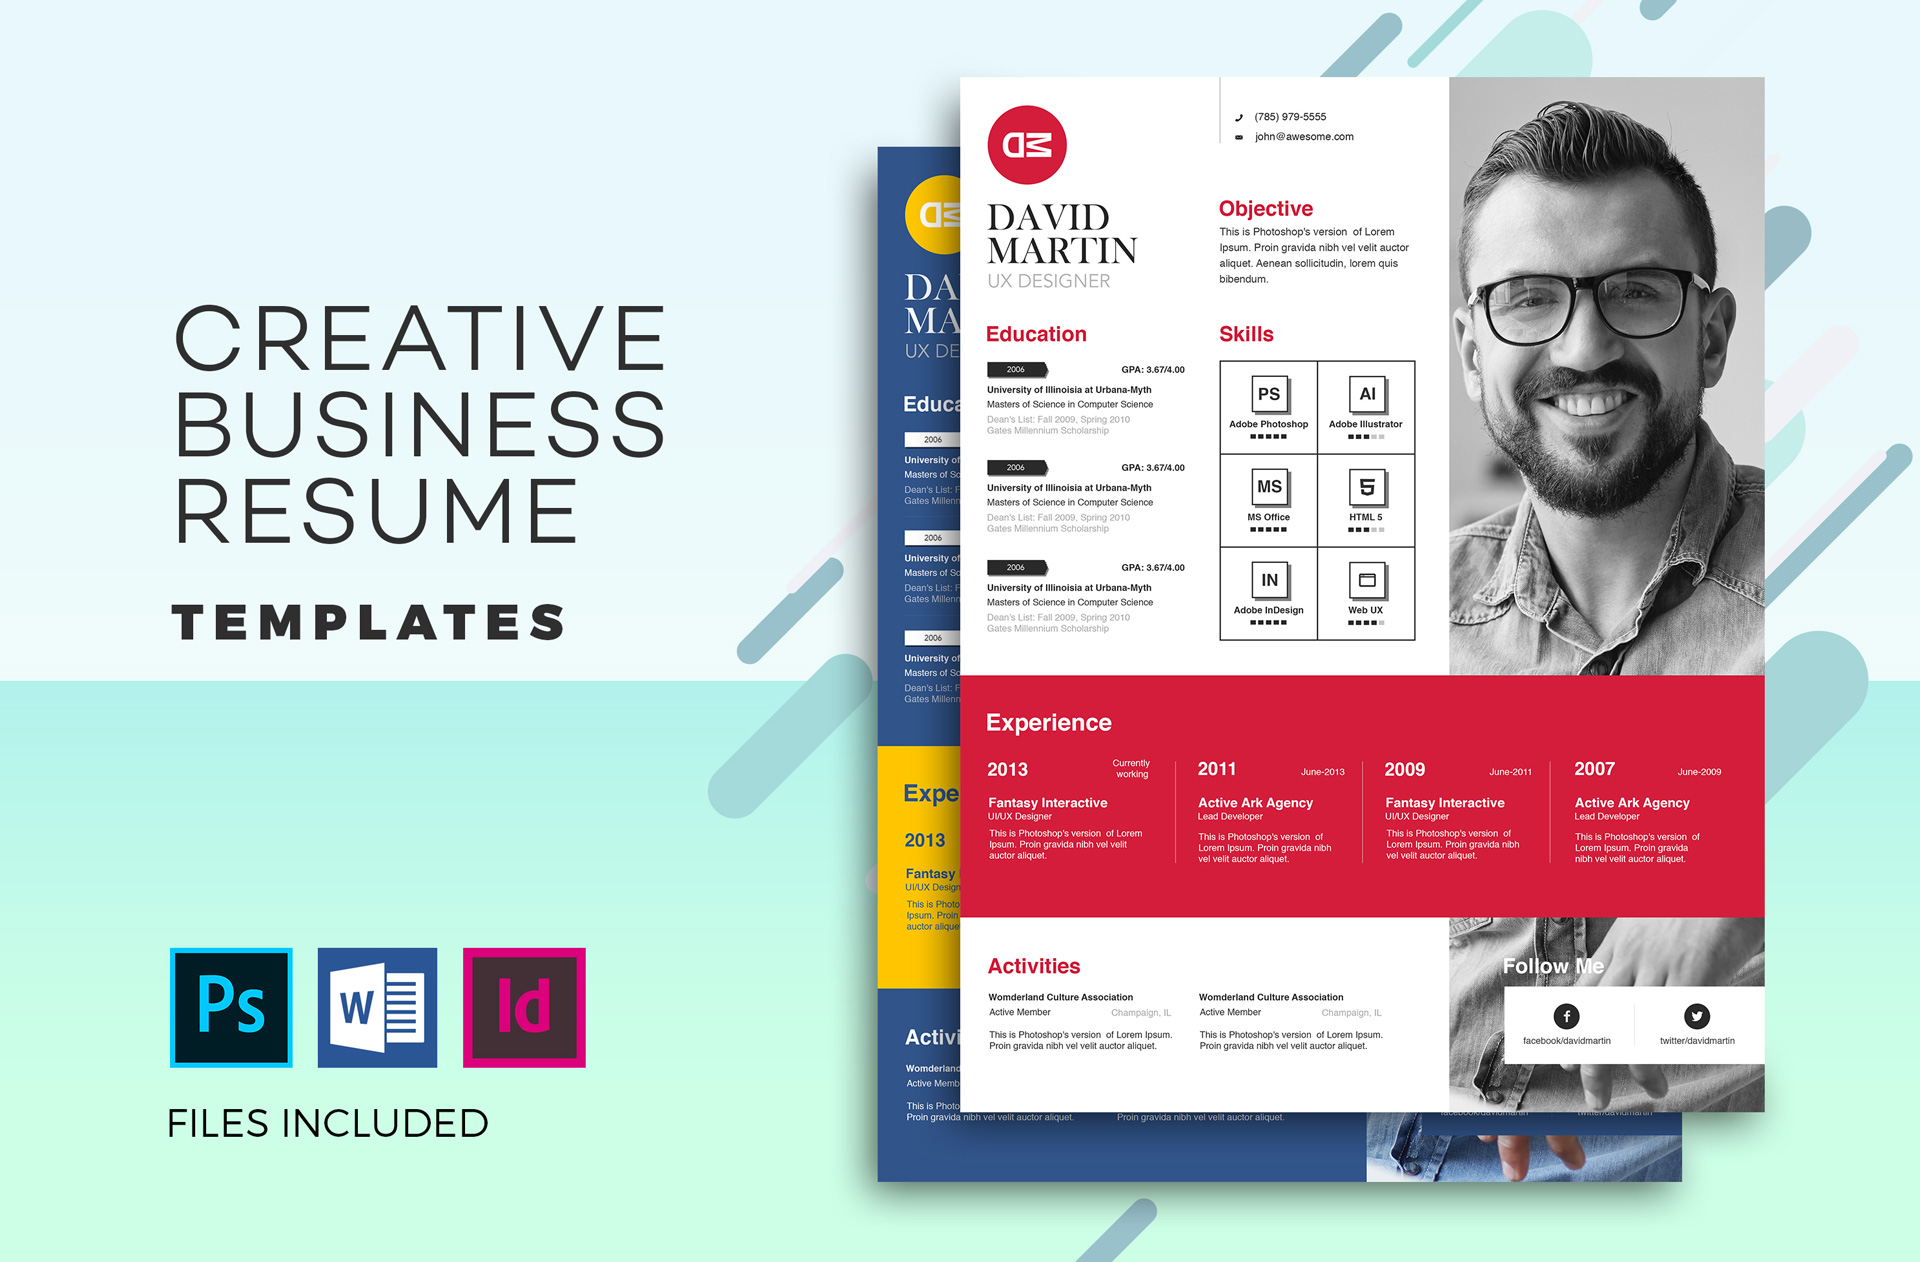 Creative Business Resume Template In MS Word PSD InDesign Formats